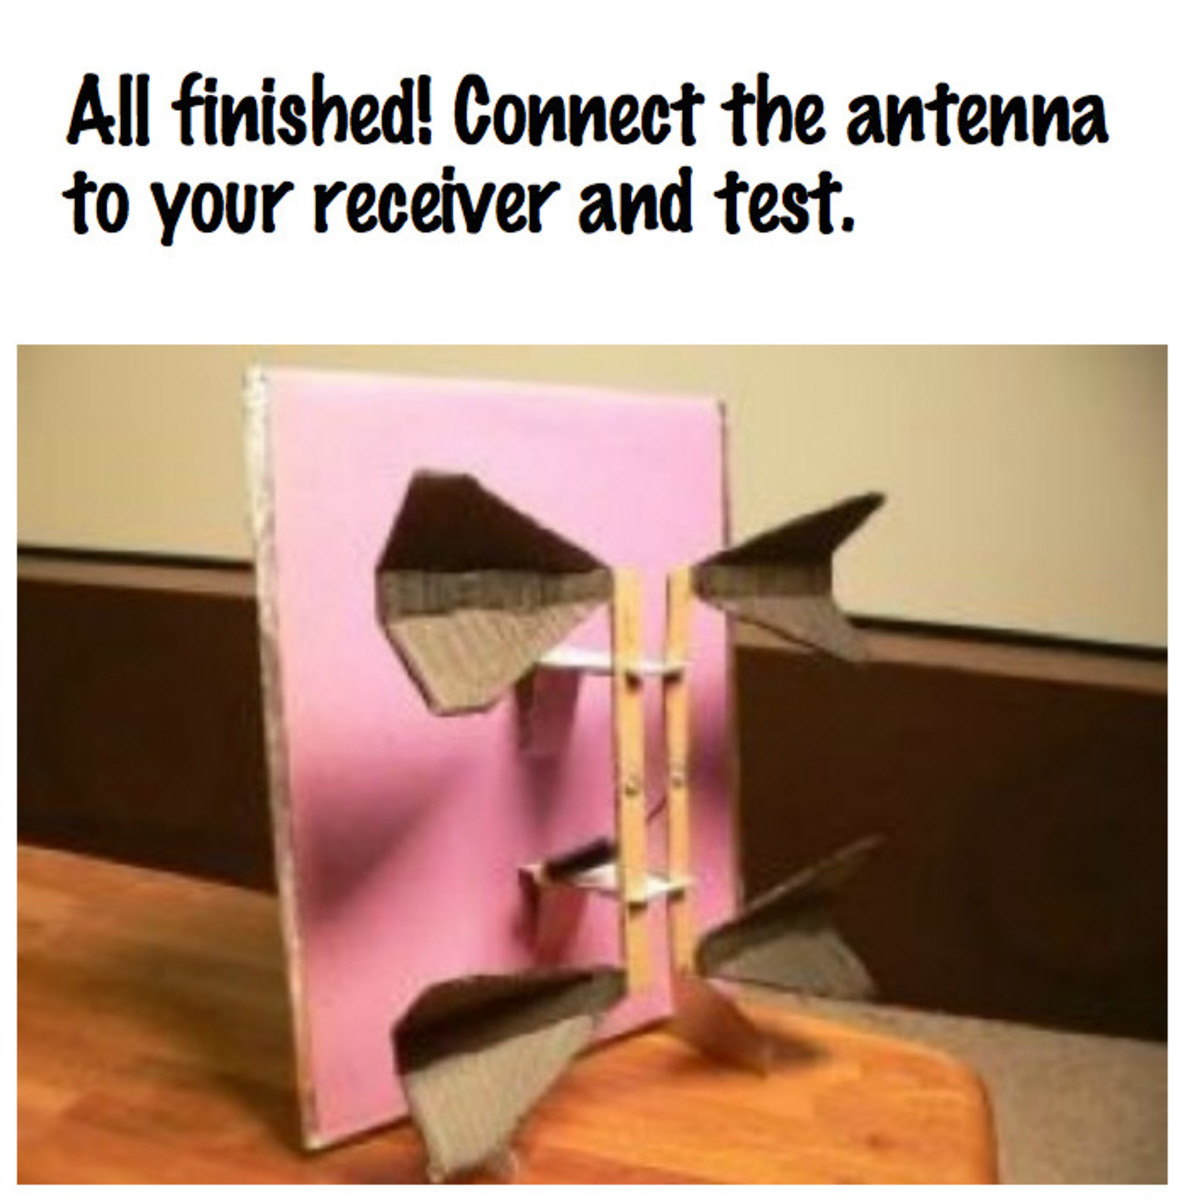 Connect your new antenna to your receiver and test.